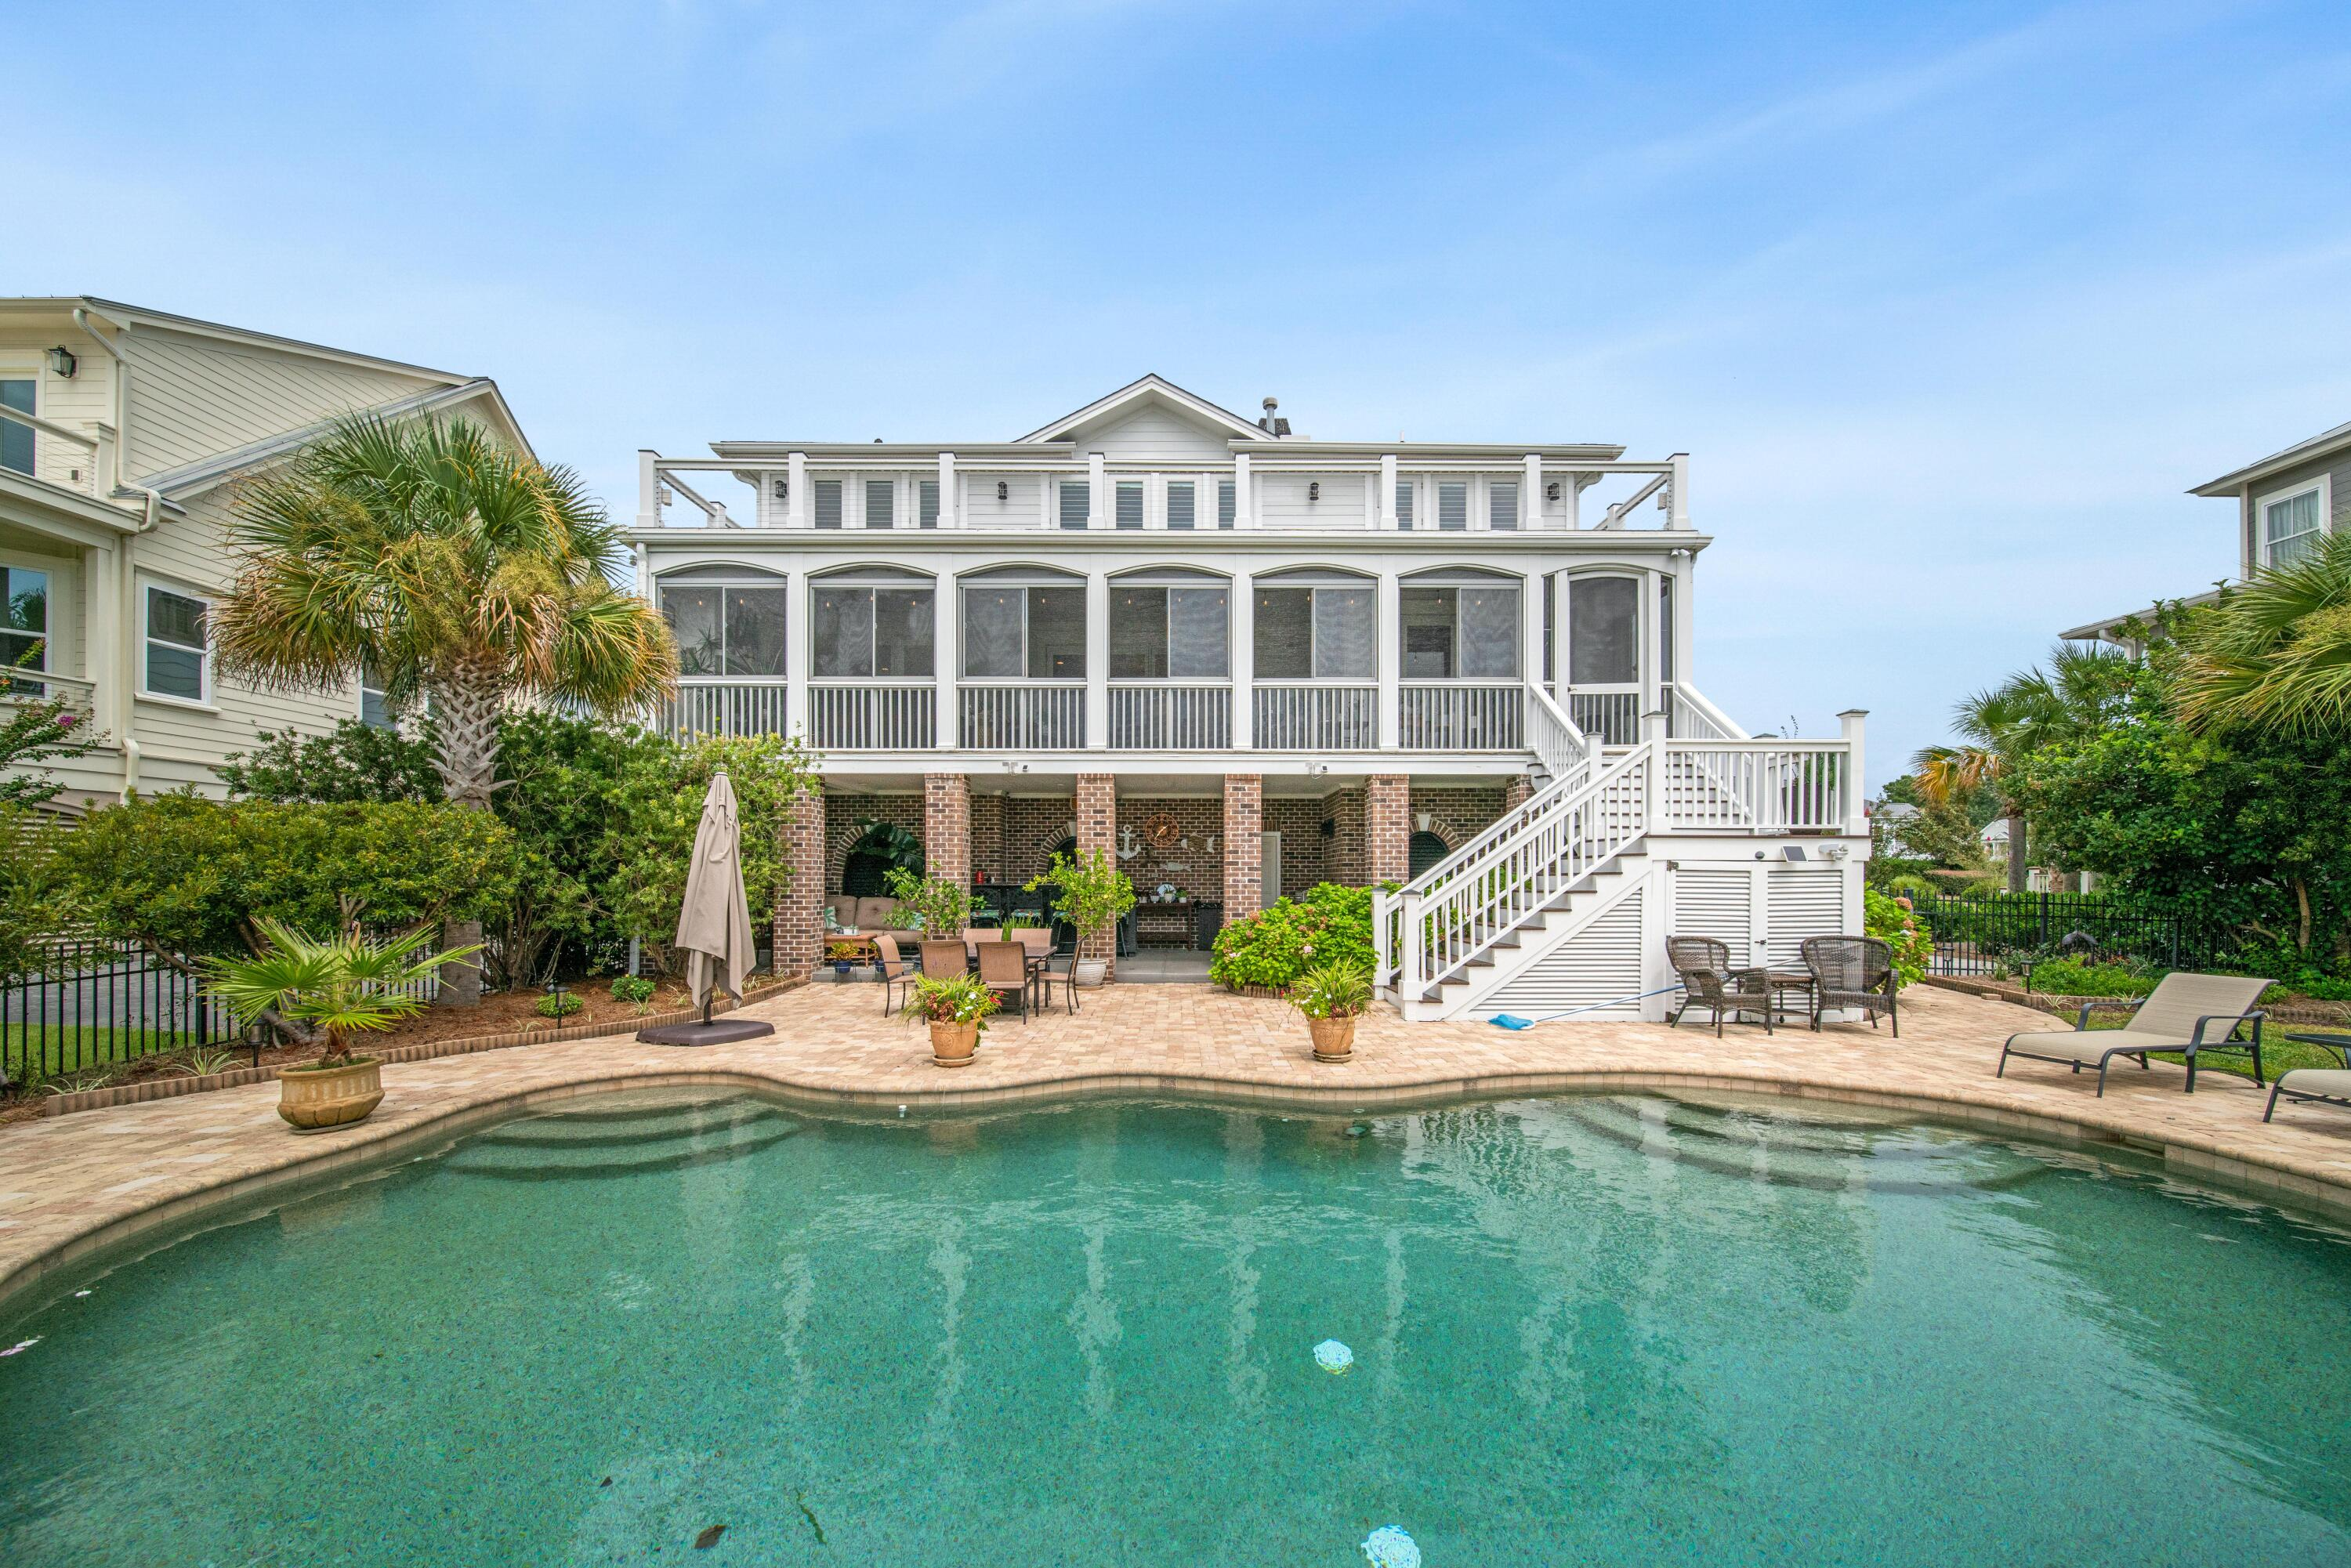 Rivertowne Country Club Homes For Sale - 1652 Rivertowne Country Club, Mount Pleasant, SC - 17